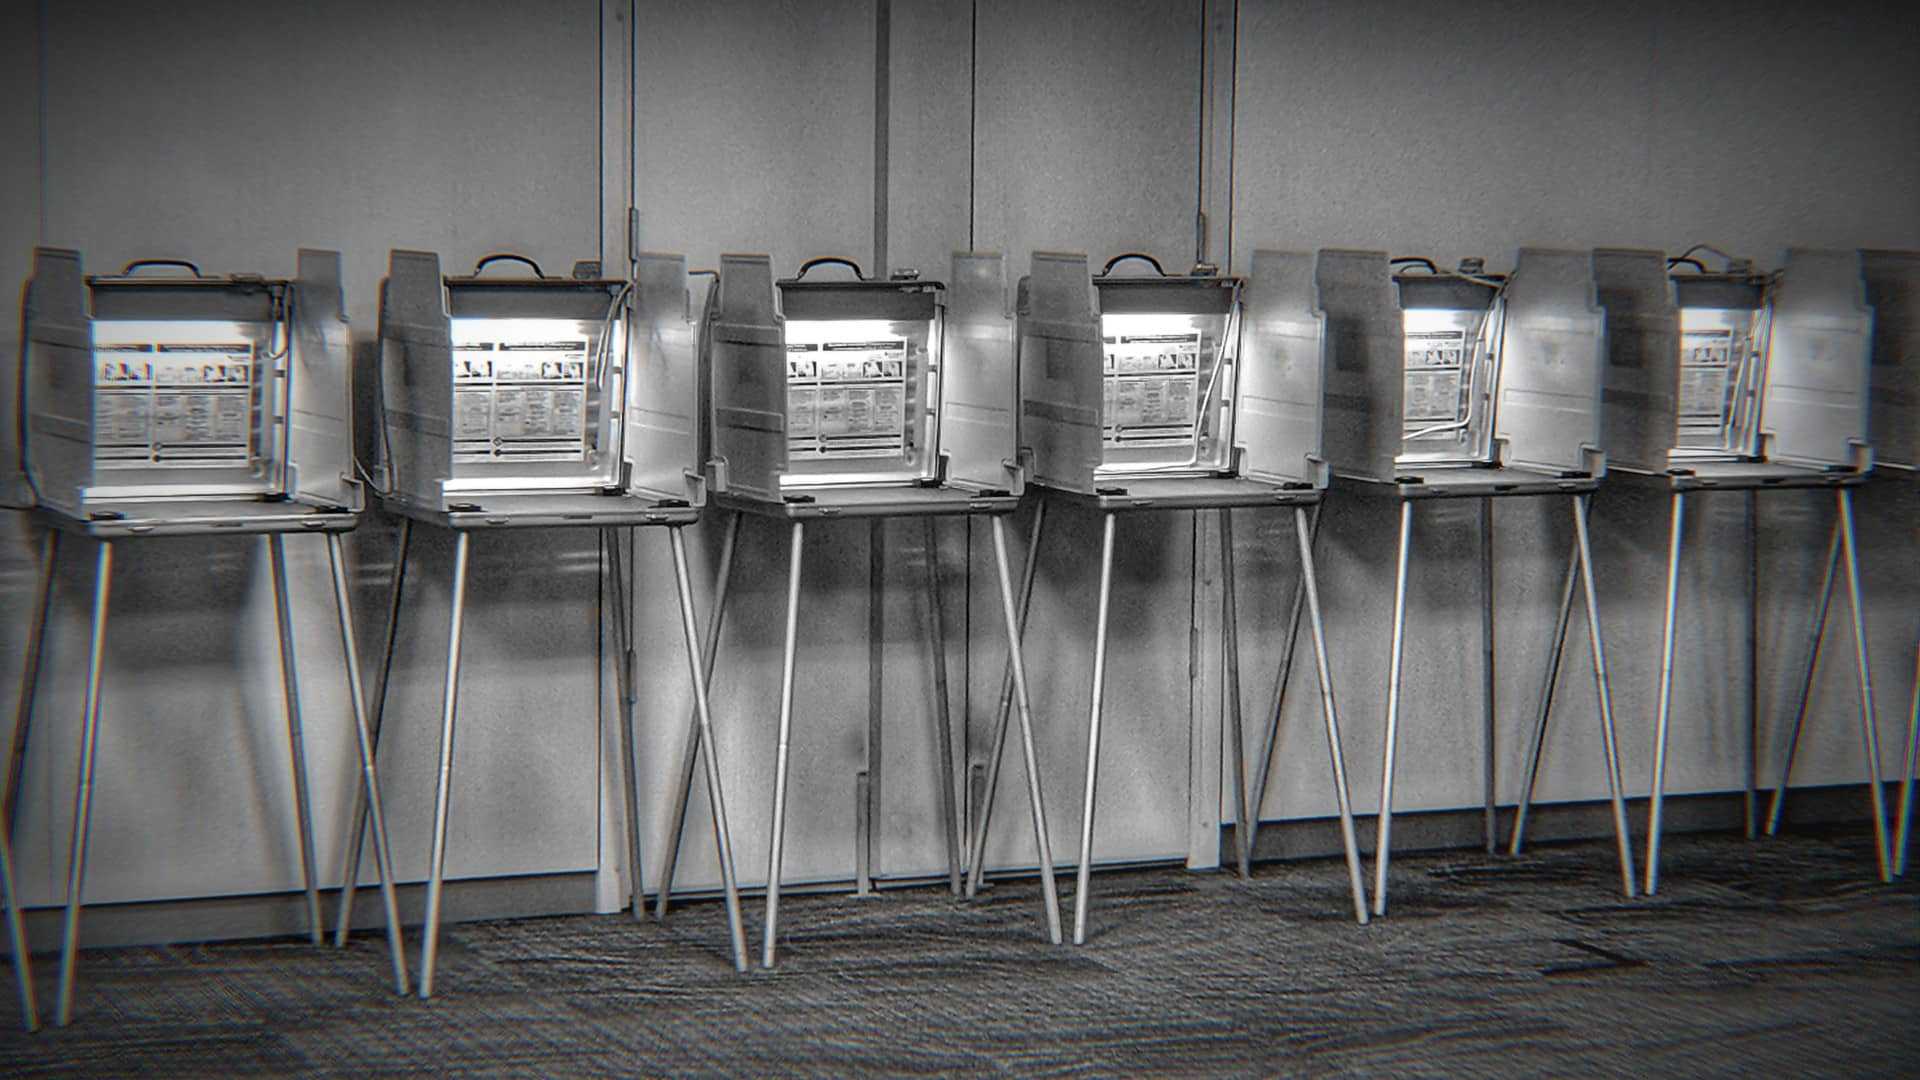 REVEALED: Dominion/Smartmatic 'Noncompete' Agreement Emerges Despite Claims of Being 'Fierce Competitors' 1